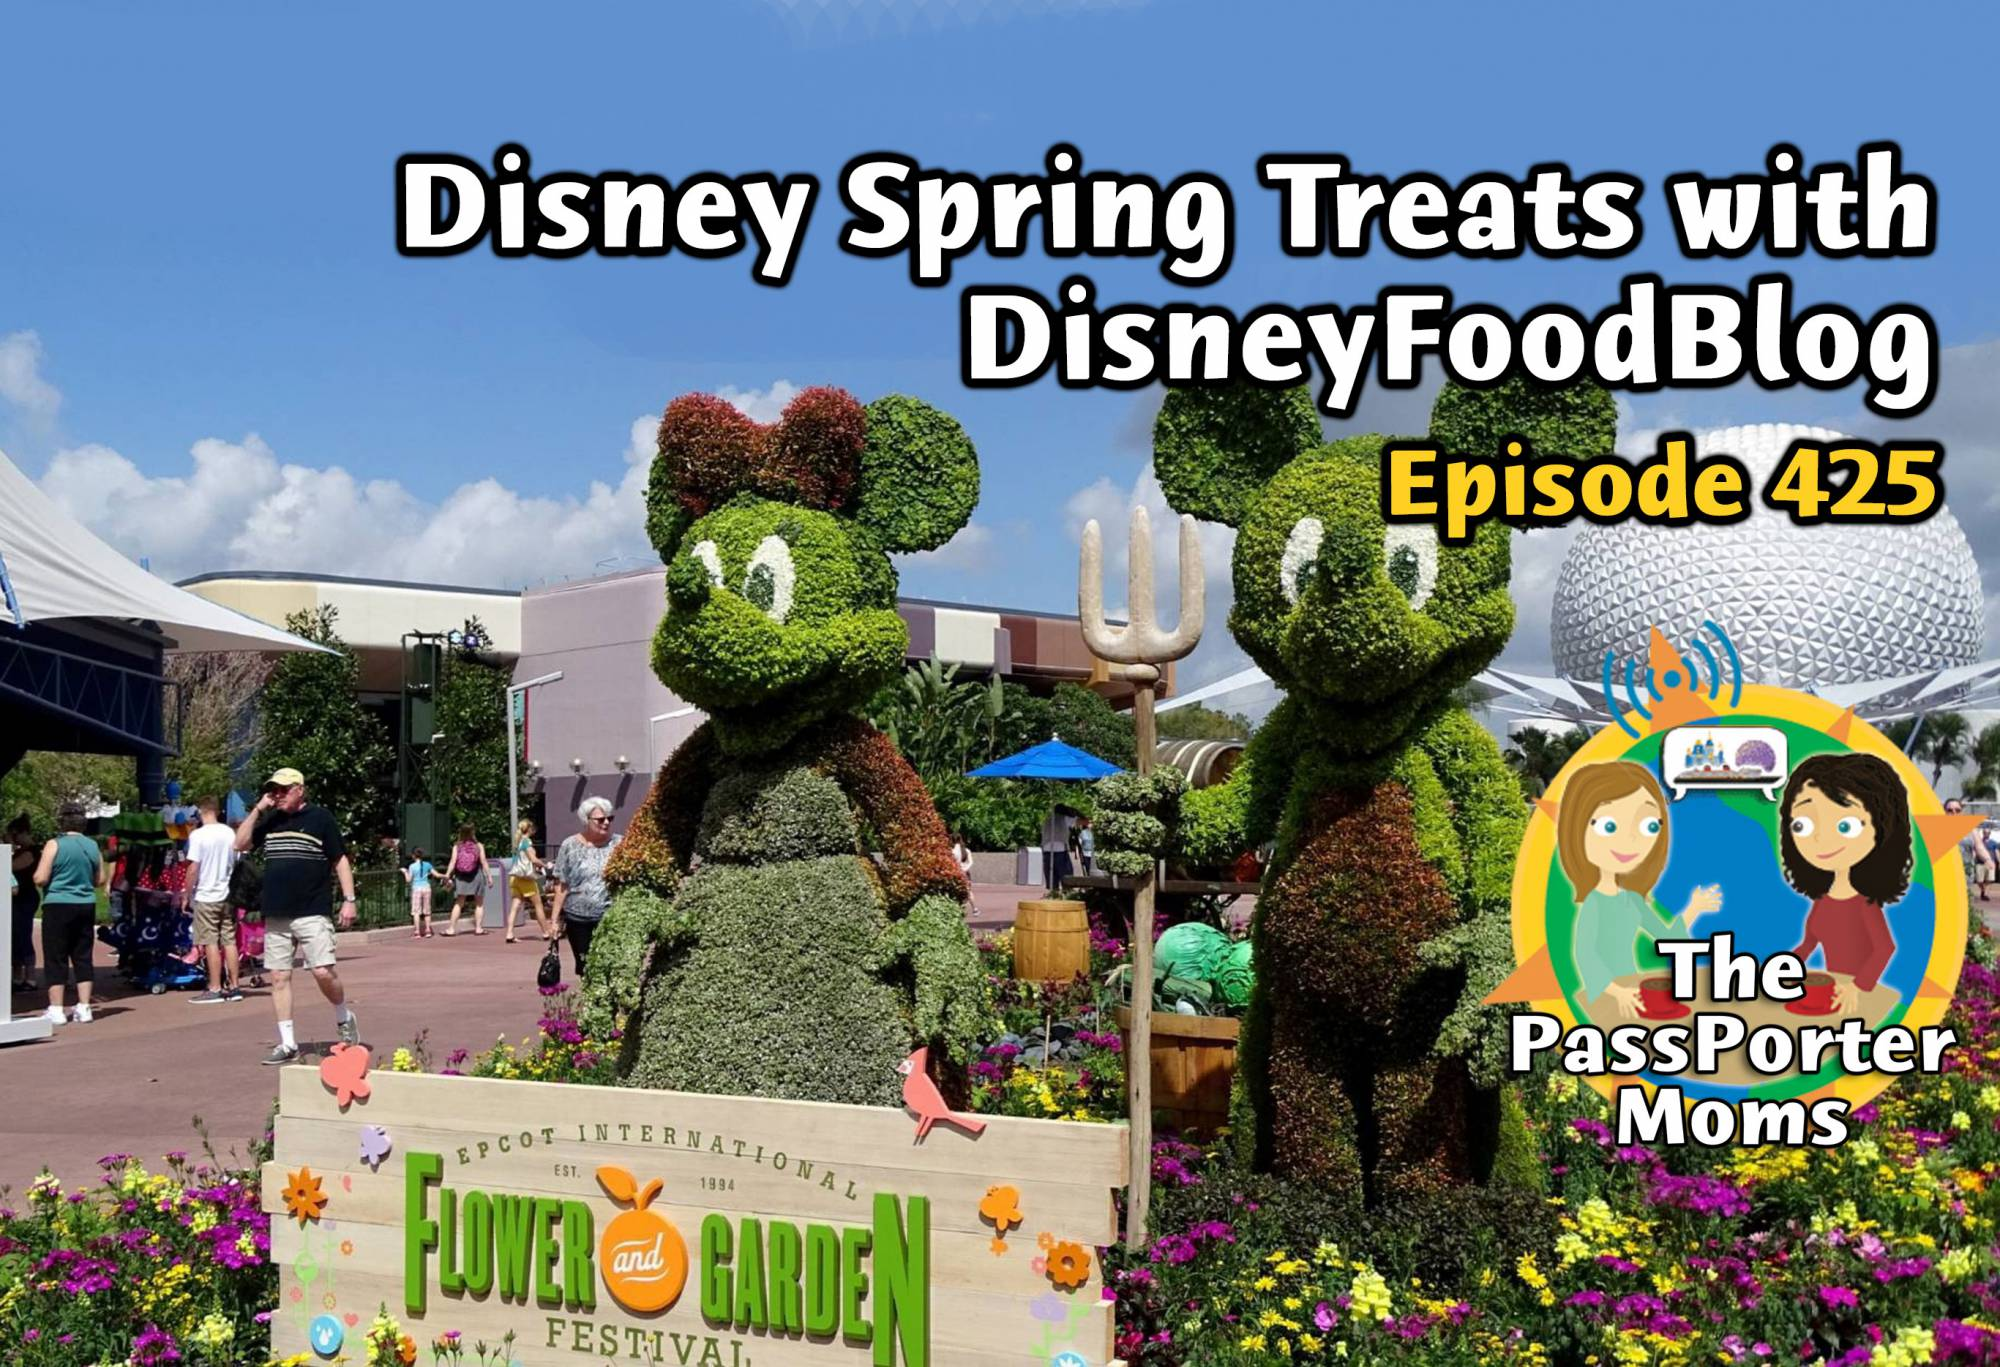 Disney Spring Treats with AJ Wolfe